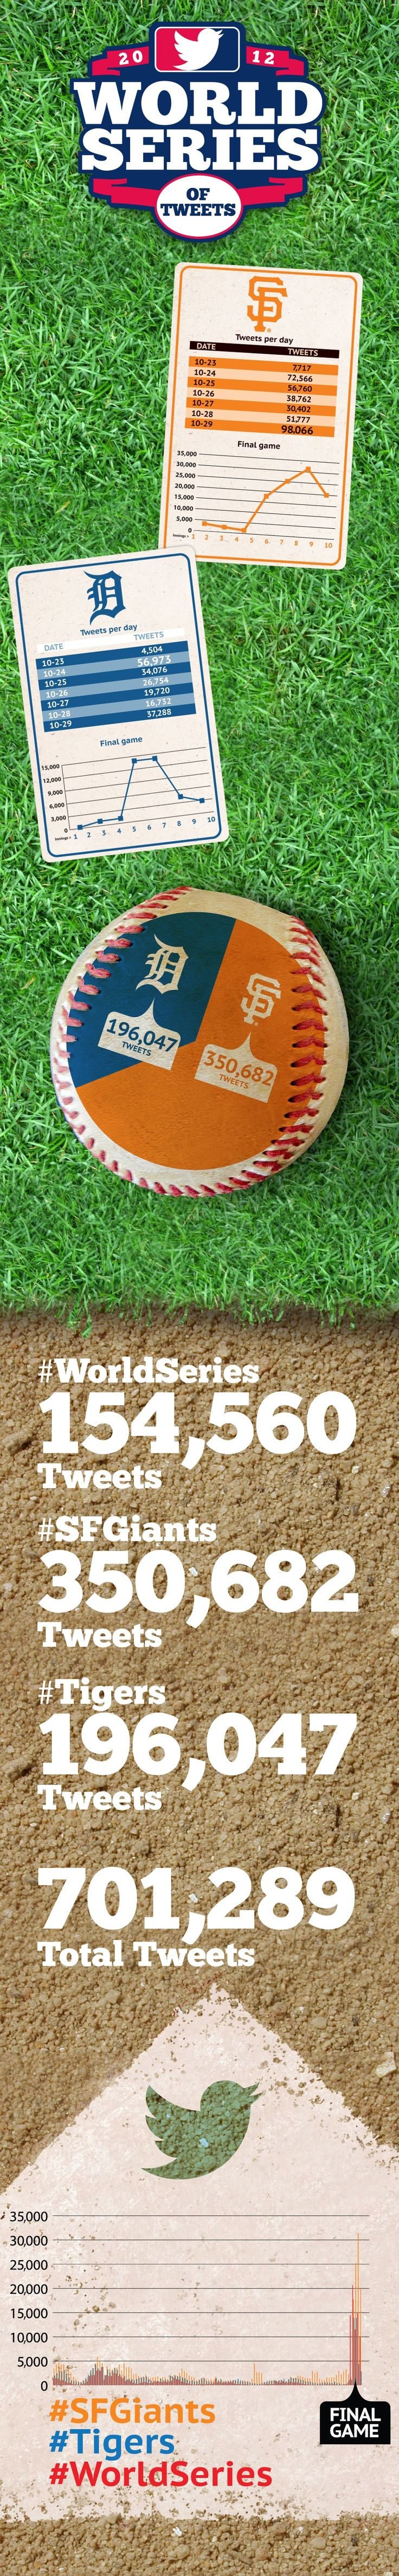 World Series V2